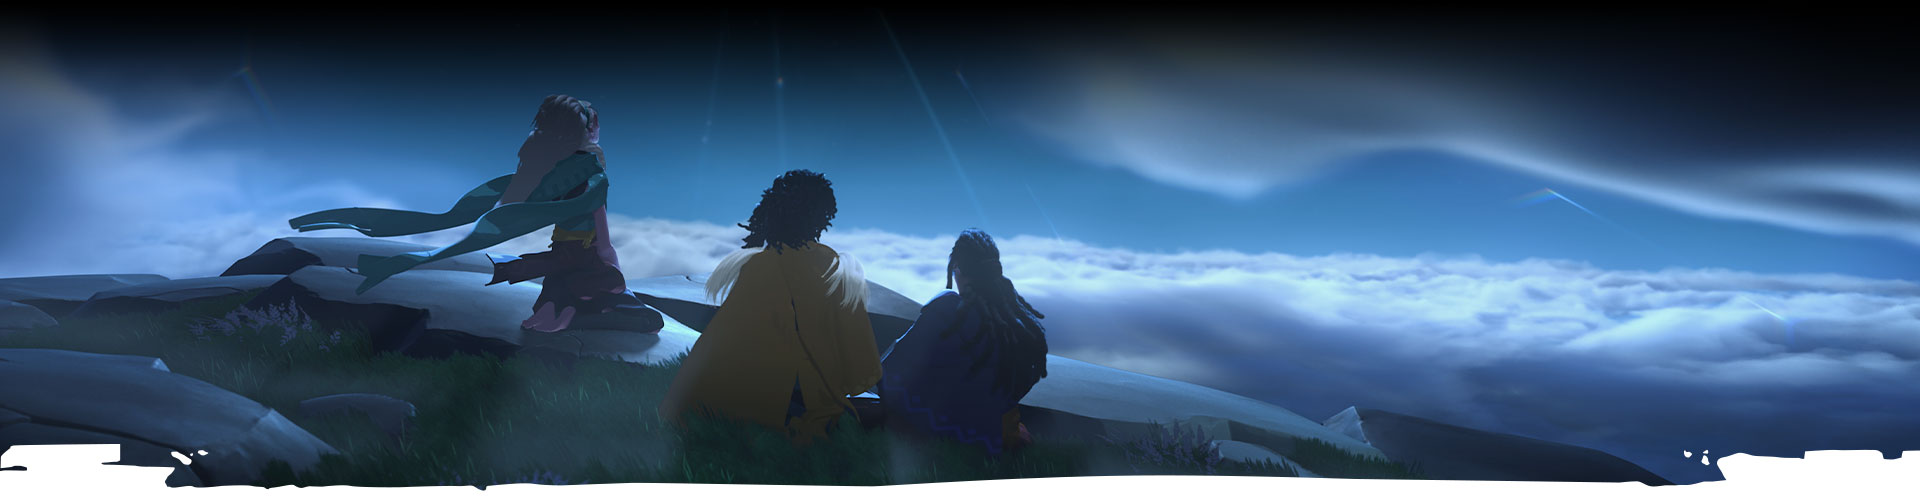 Three characters look up at the night sky.